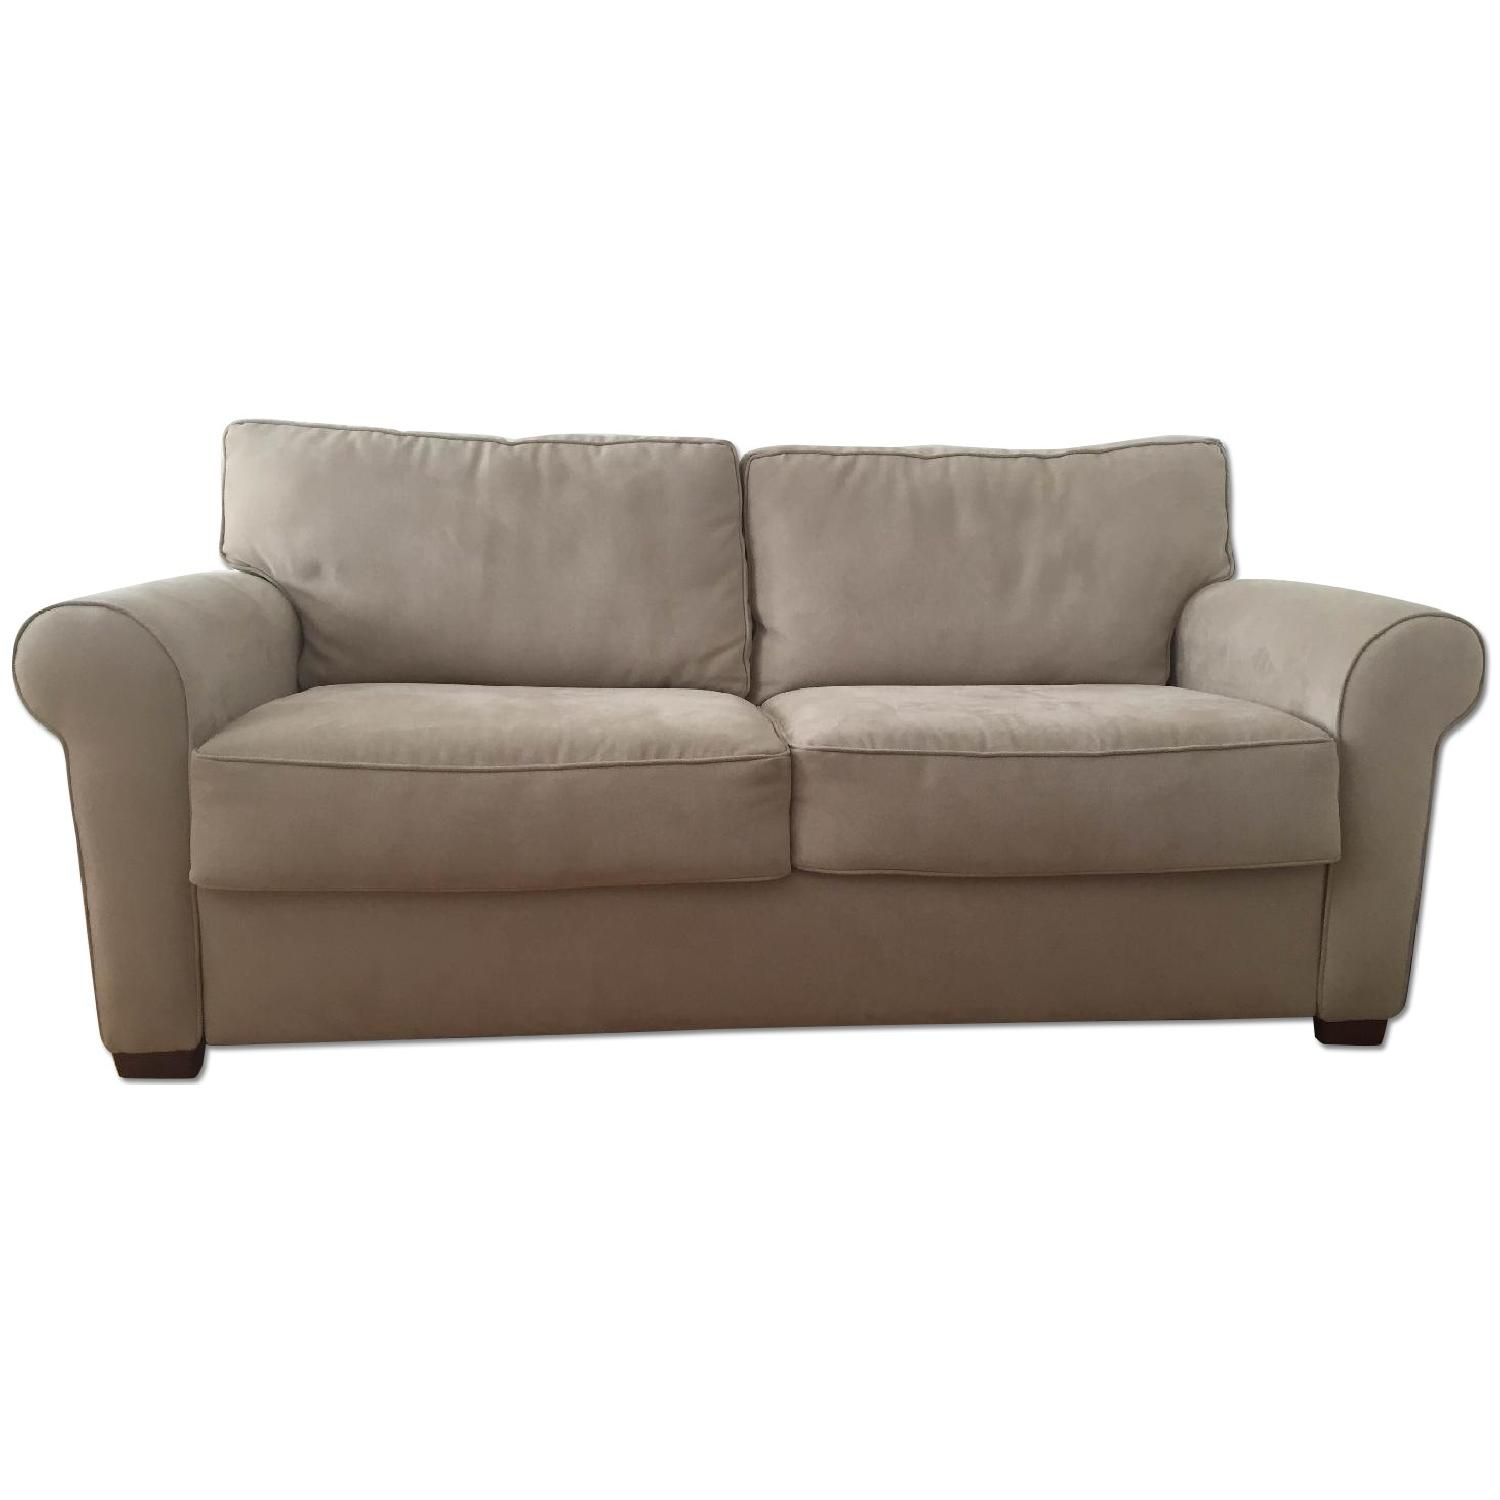 Crate & Barrel Pull Out Couch - image-0